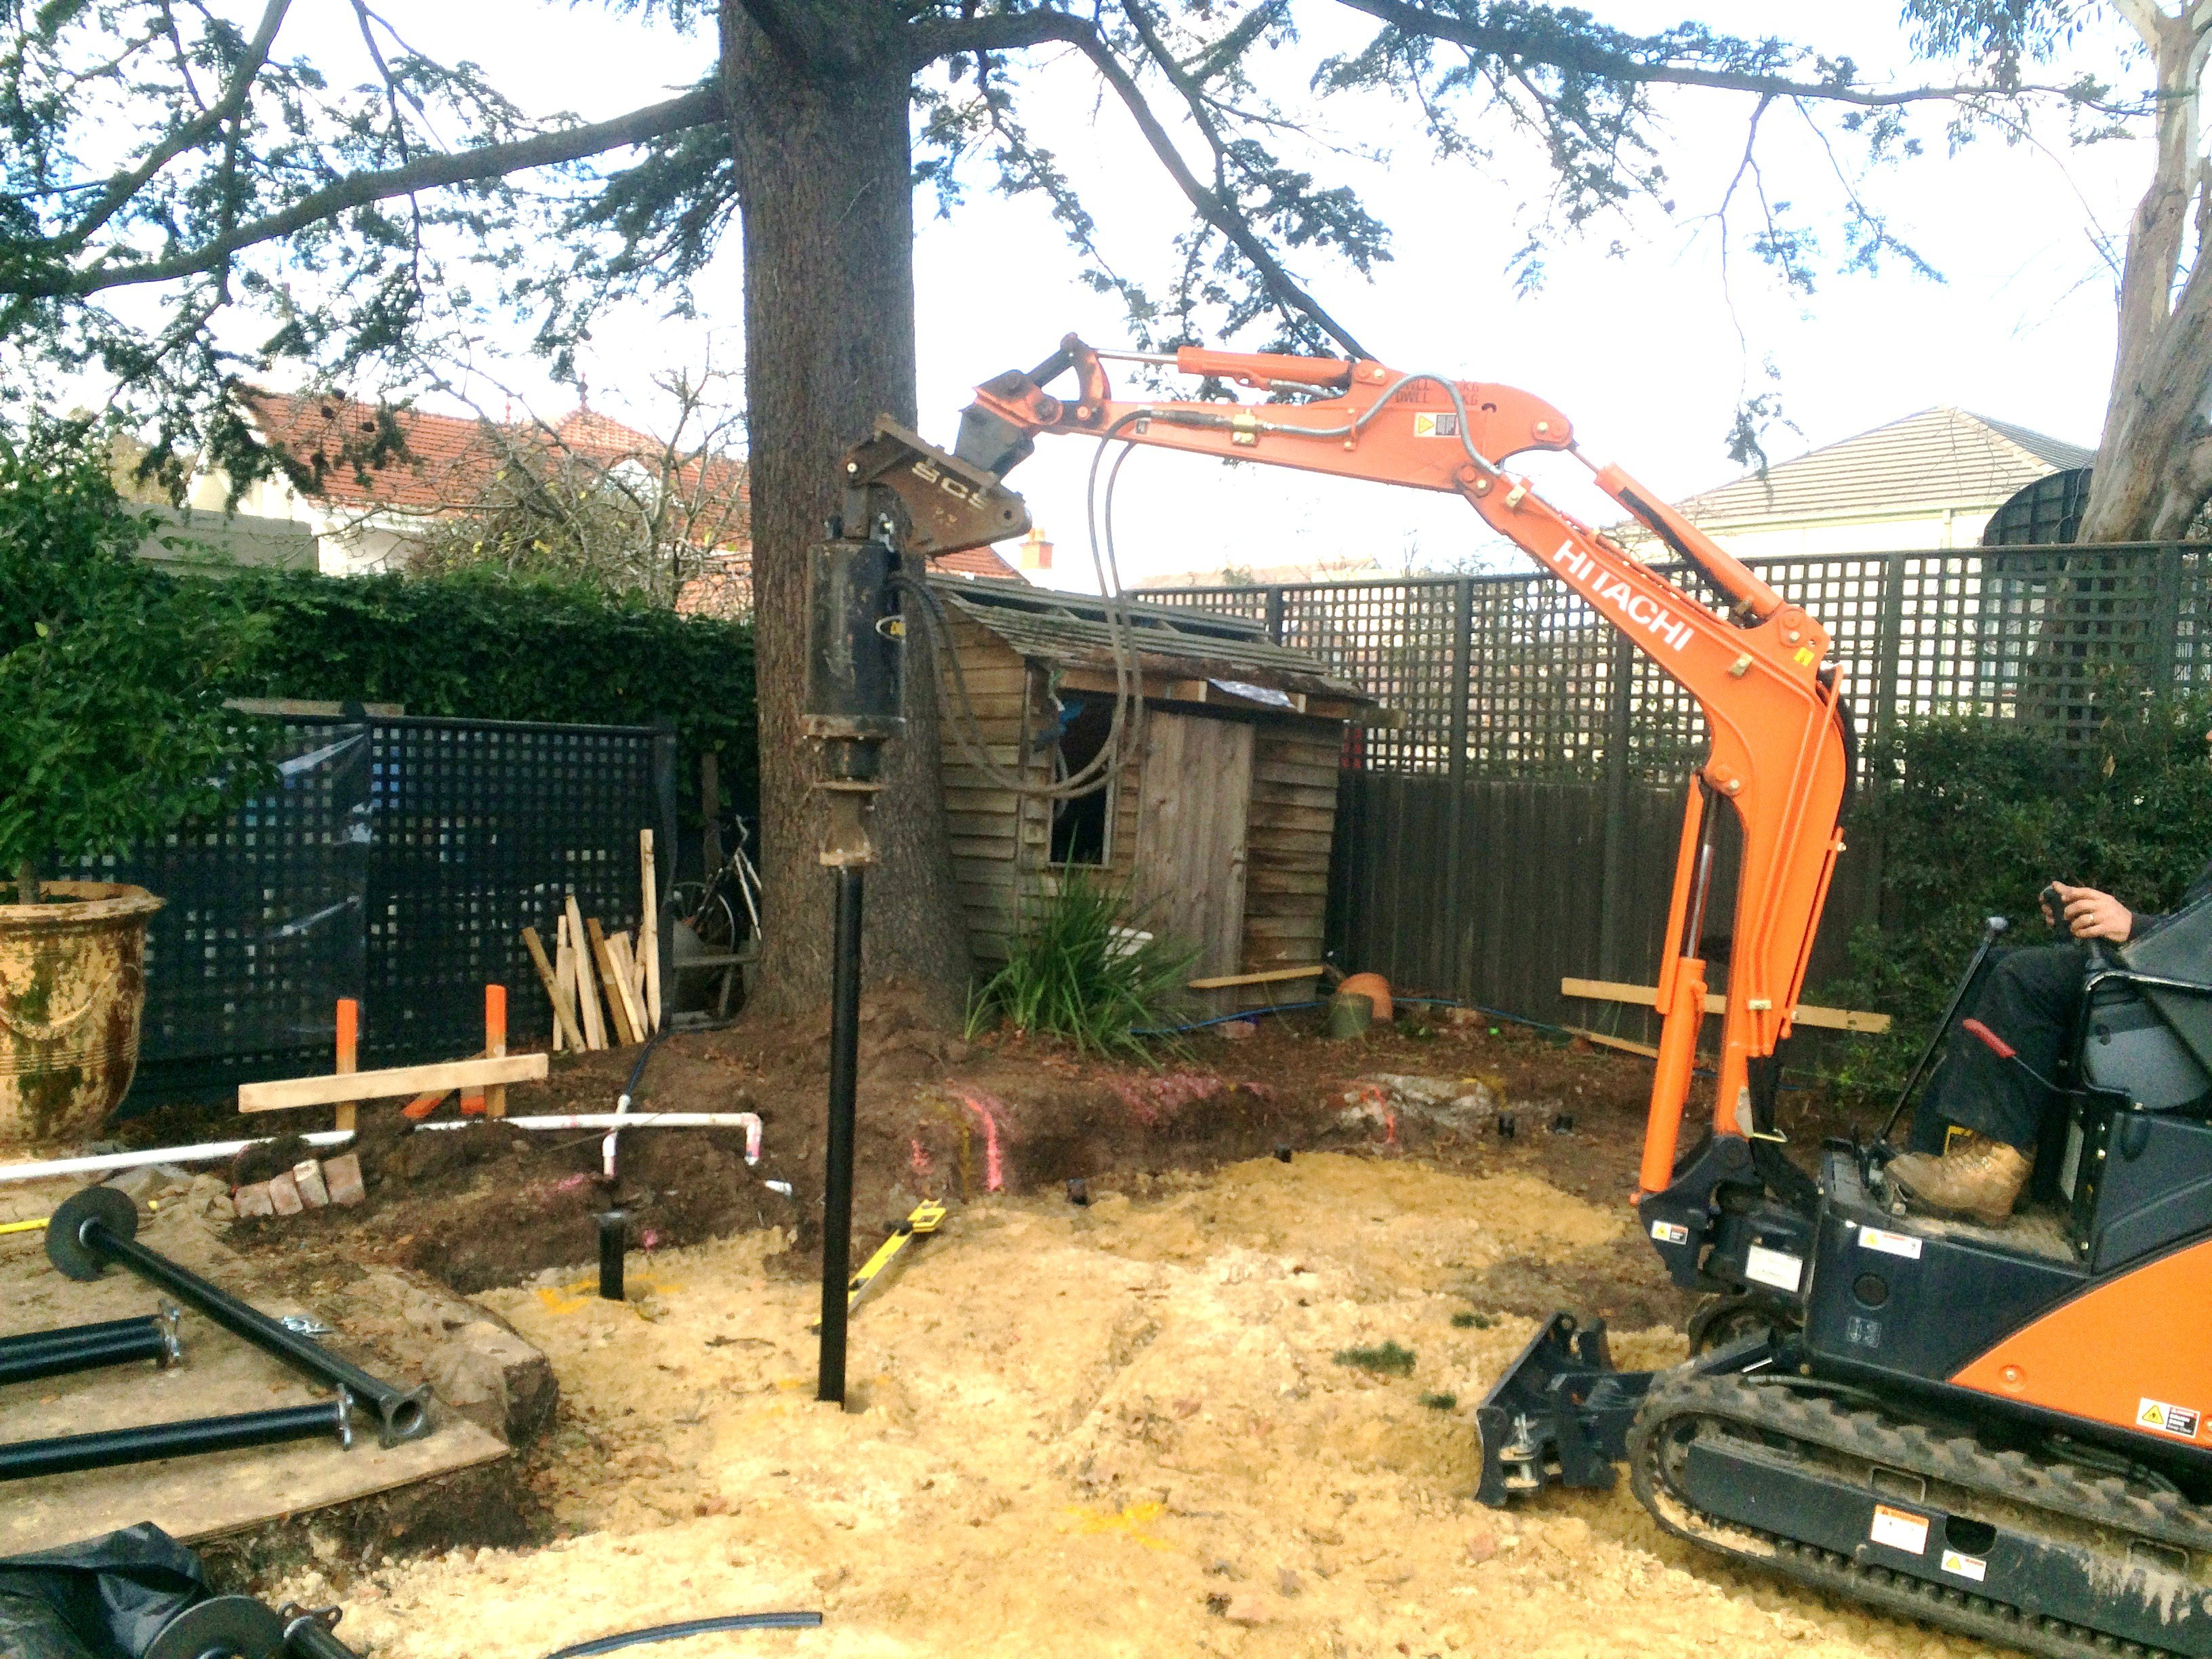 Screw piles used for Tree Root Barrier for heratige listed trees